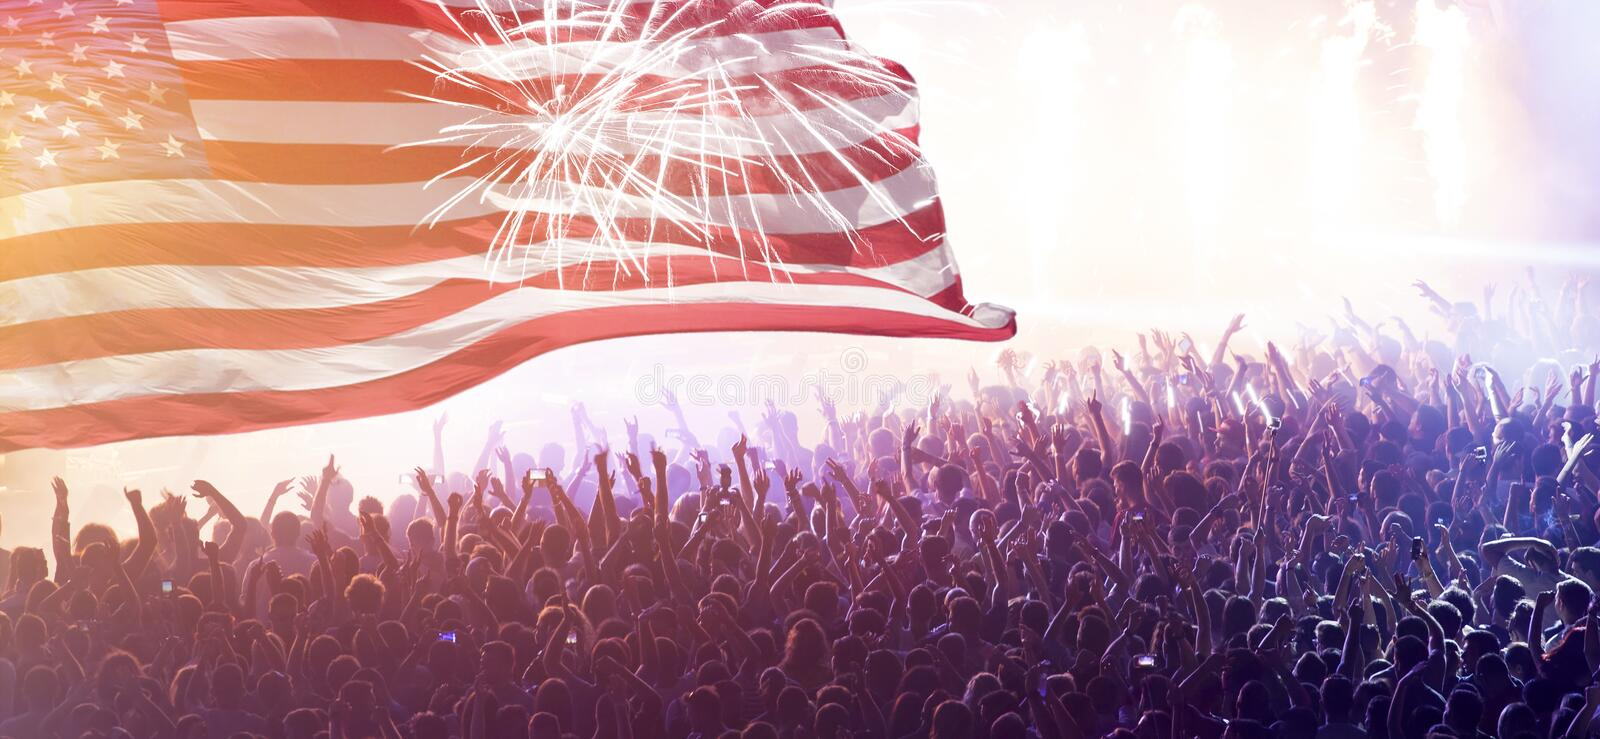 United States flag - crowd celebrating 4th of July Independence Day stock photo